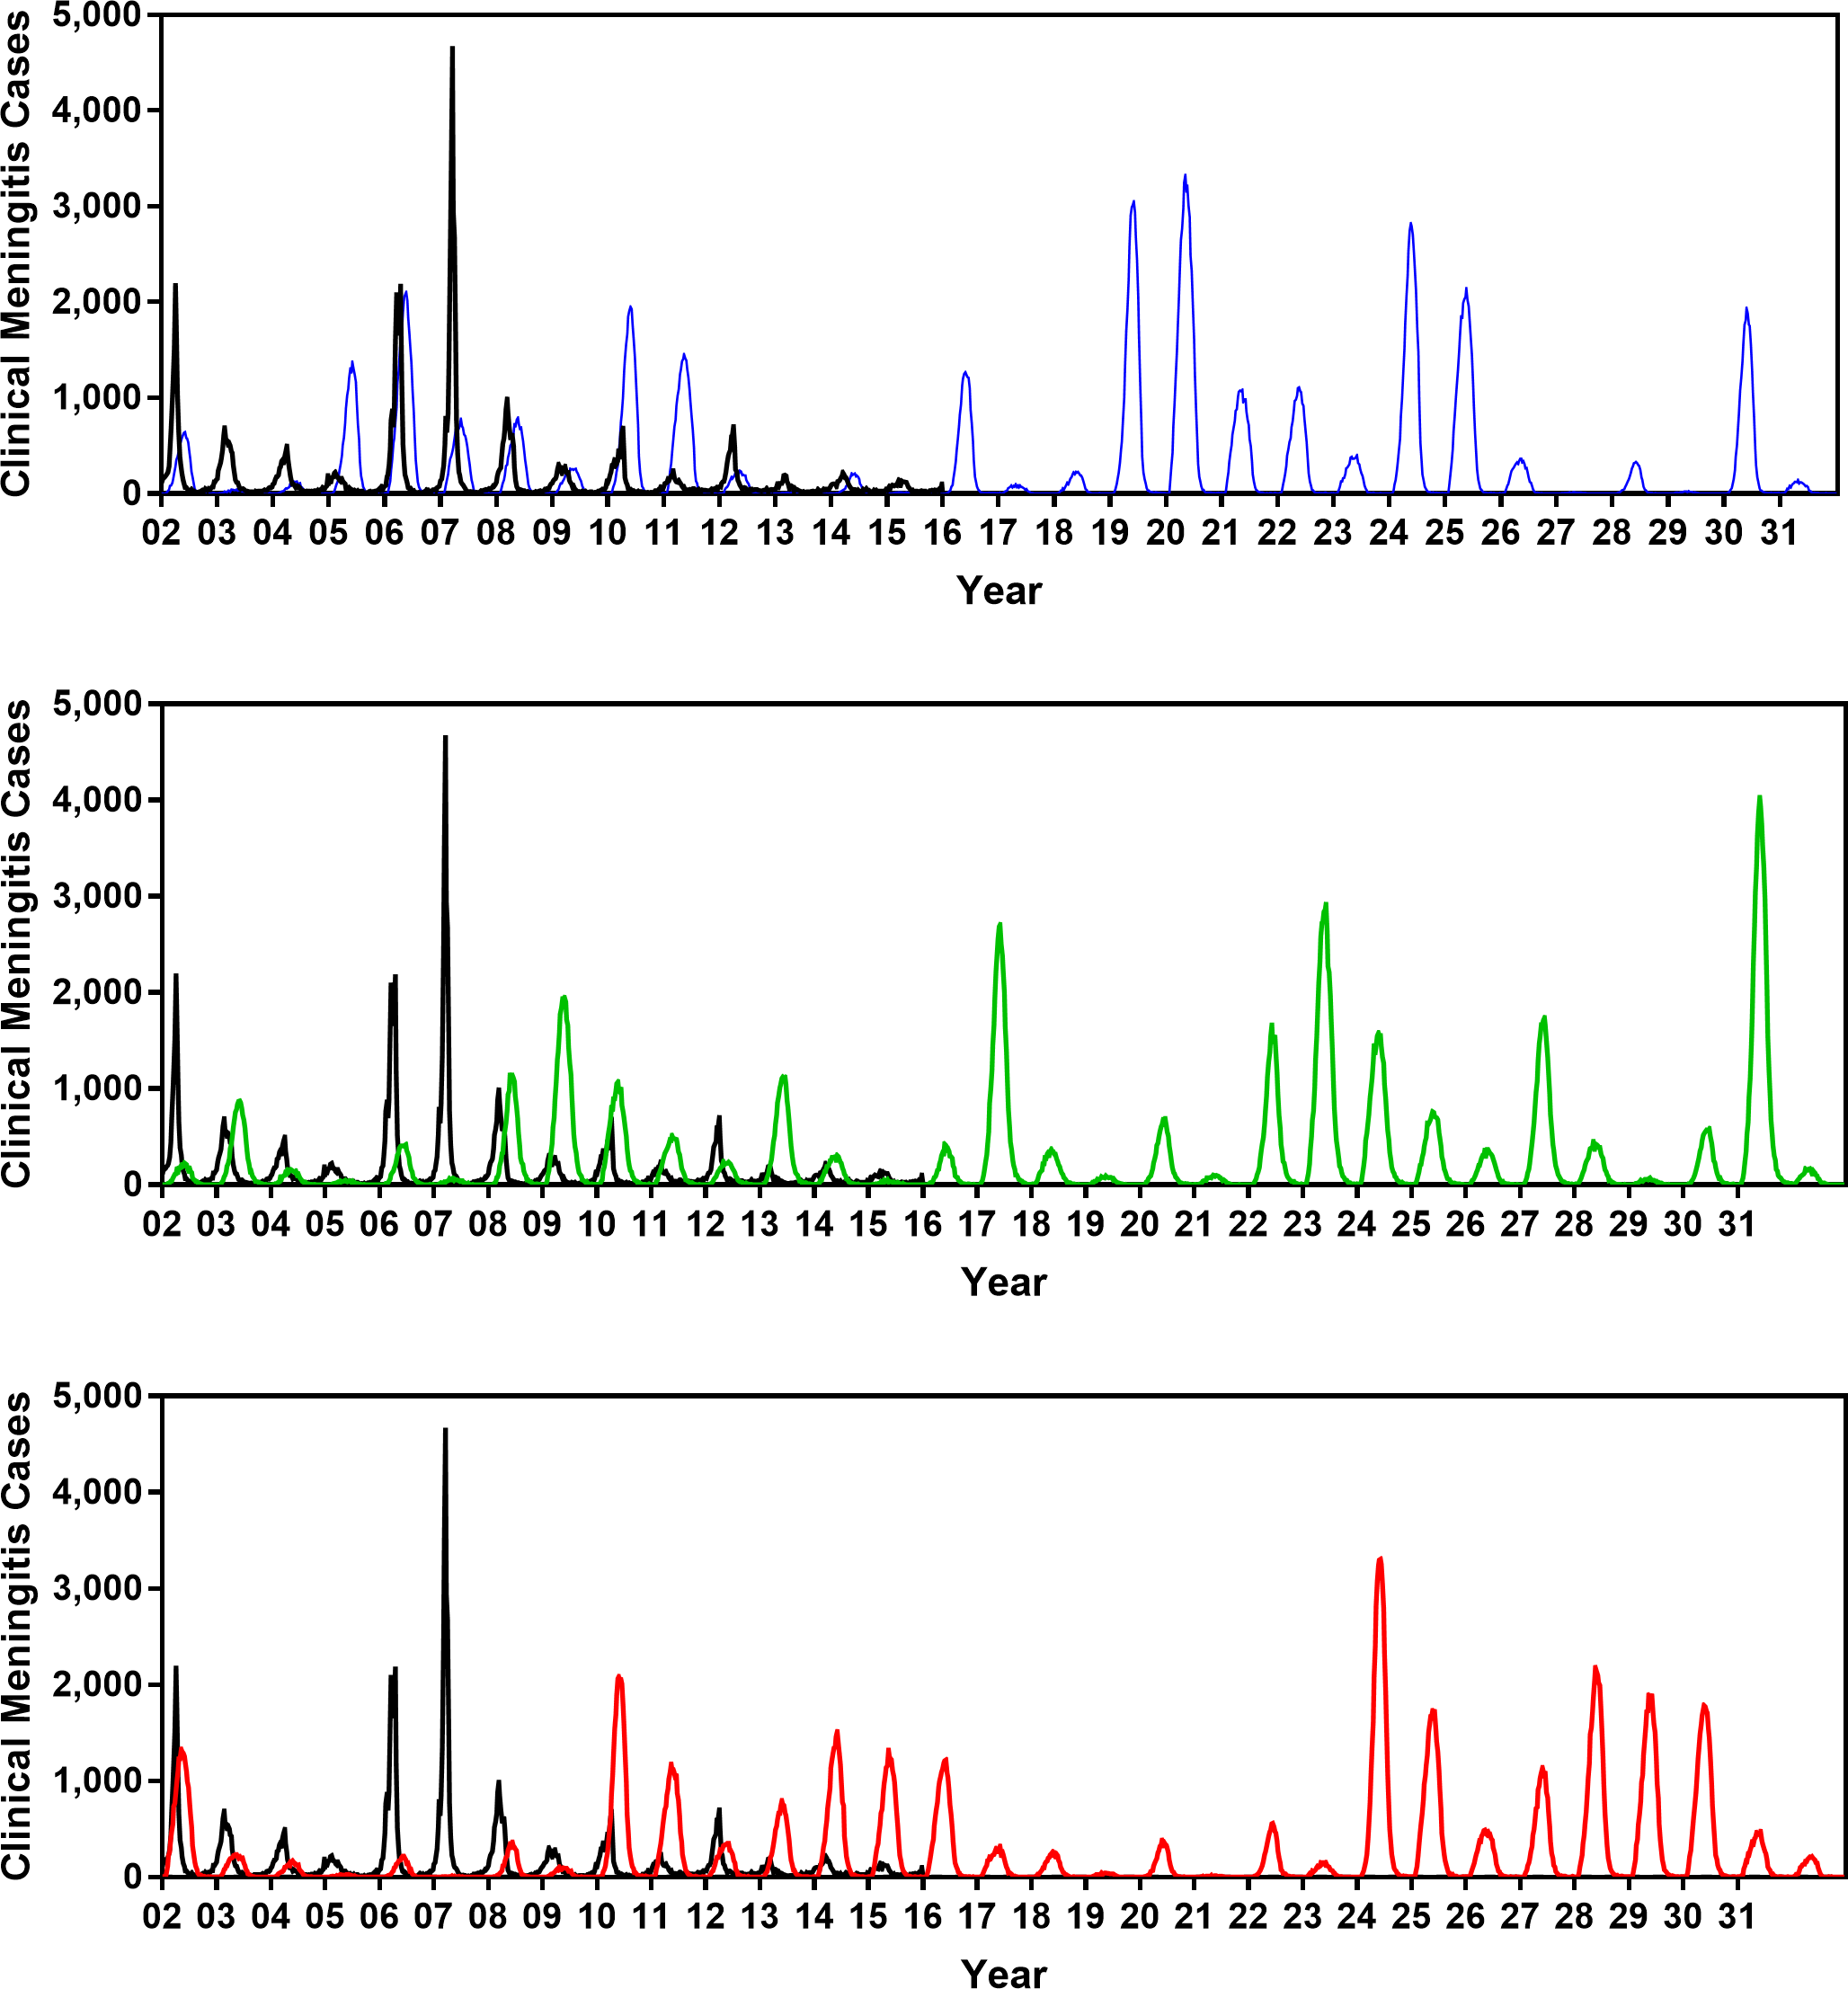 Comparing the clinical meningitis time series observed between 2002 and 2015 in Burkina Faso (black curve) with three simulated trajectories produced by the calibrated model (blue, green, and red curves).